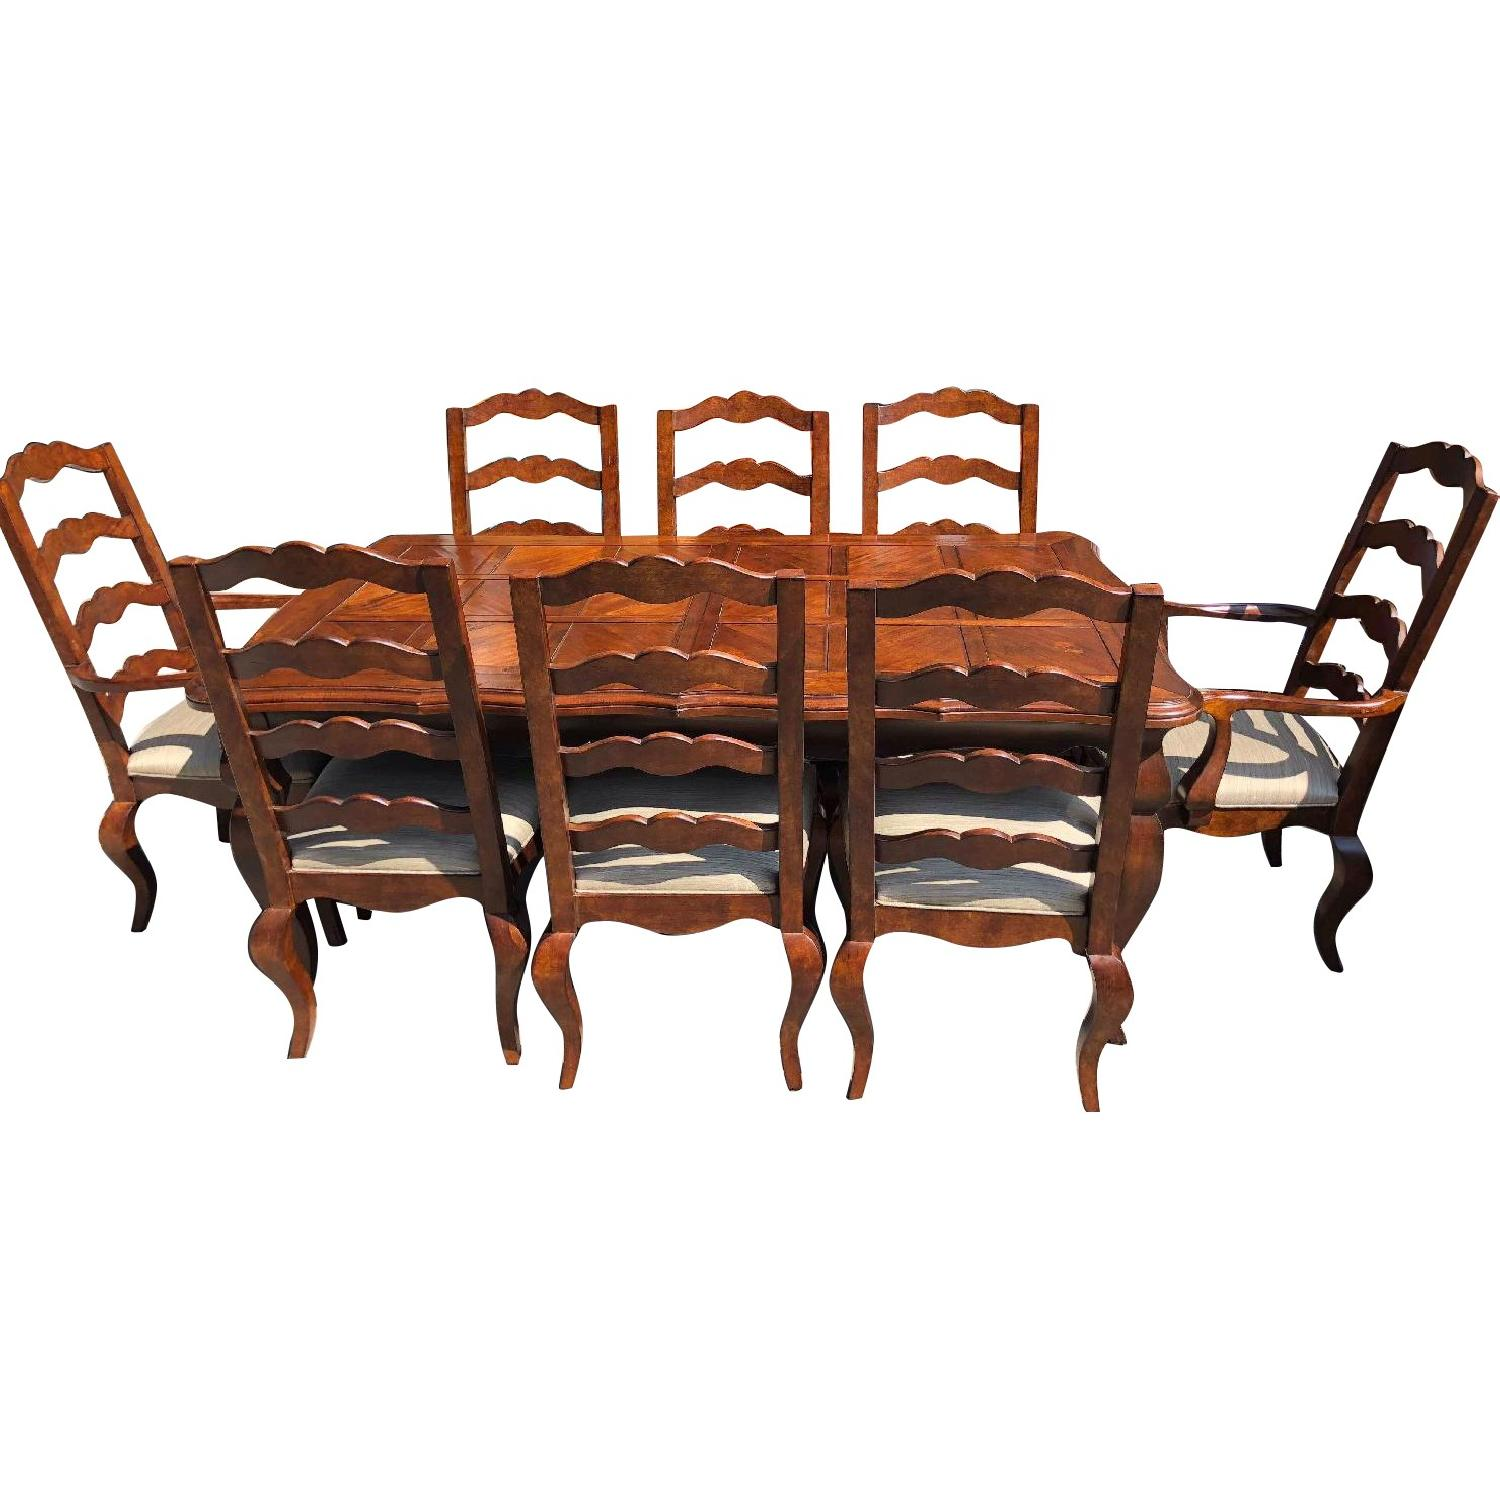 Century Furniture Extendable Dining Table w/ 8 Chairs